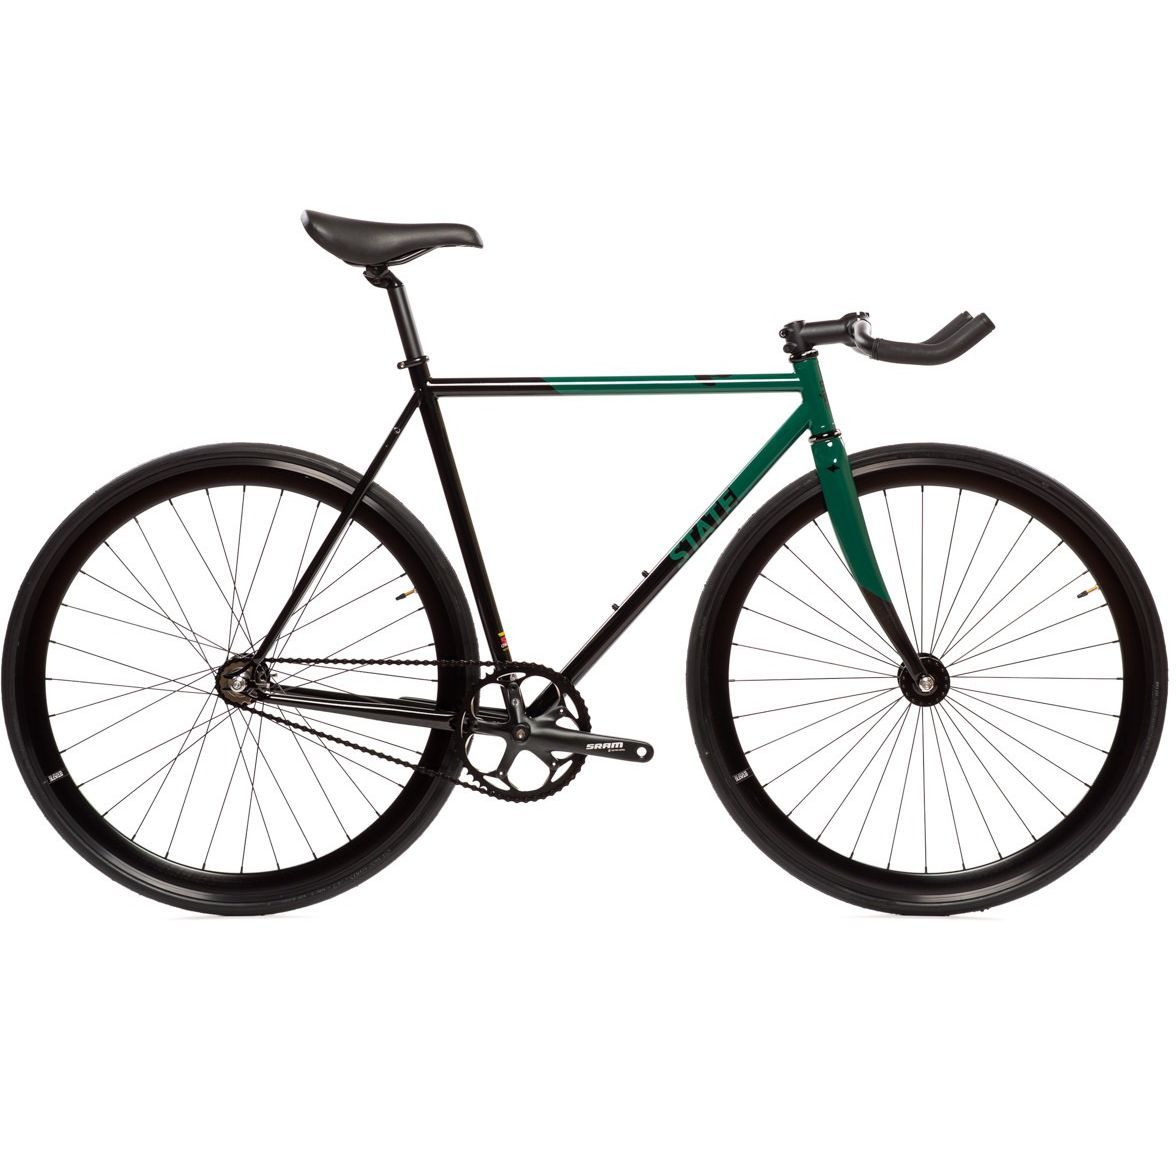 State Bicycle Co. Contender II   Green Chromoly Fixed Gear Track Bike